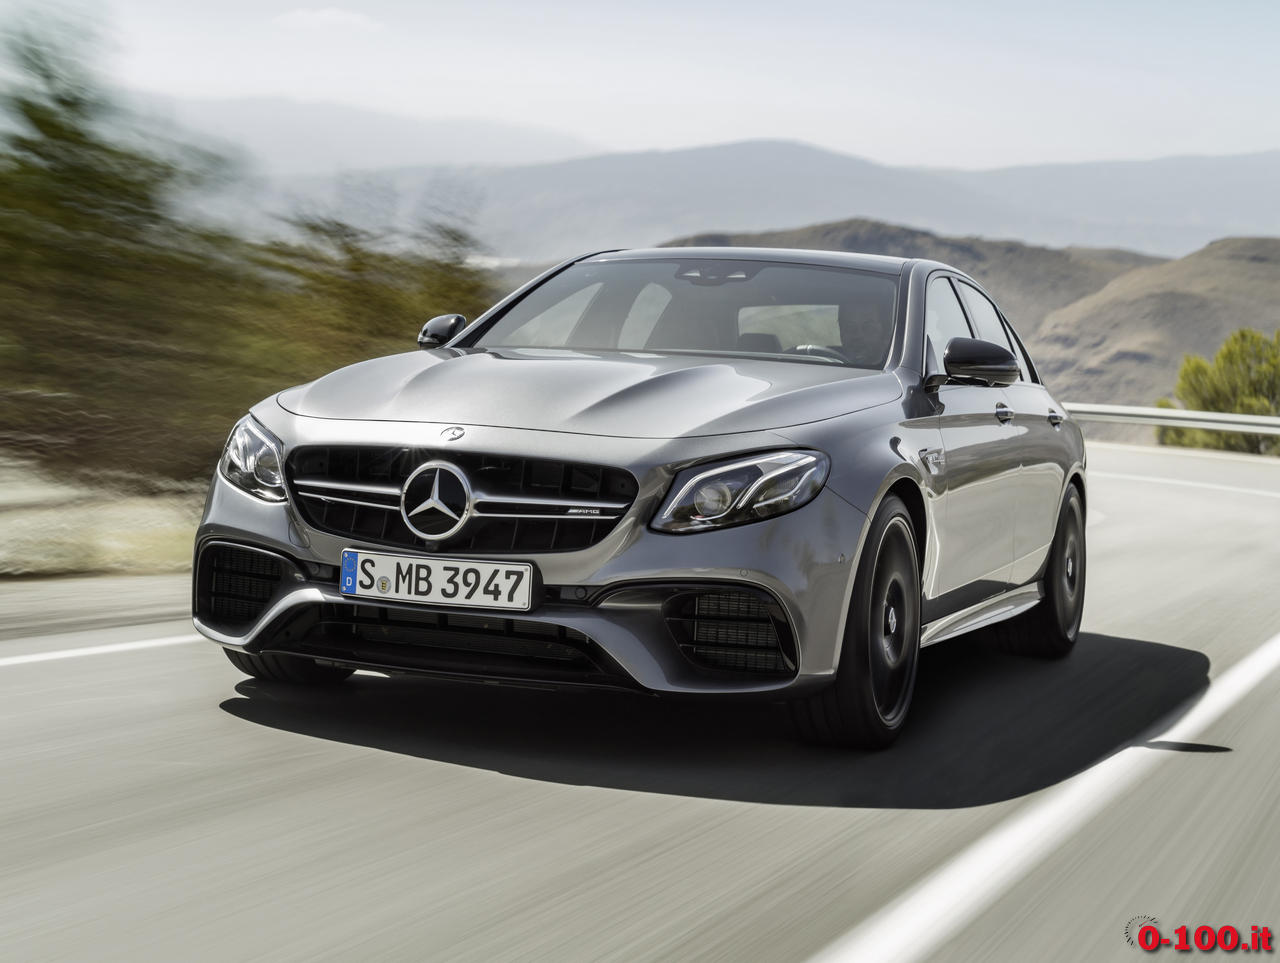 mercedes-amg-e-63-4matic-ed-e-63-s-4matic-570-612-hp-0-100_1